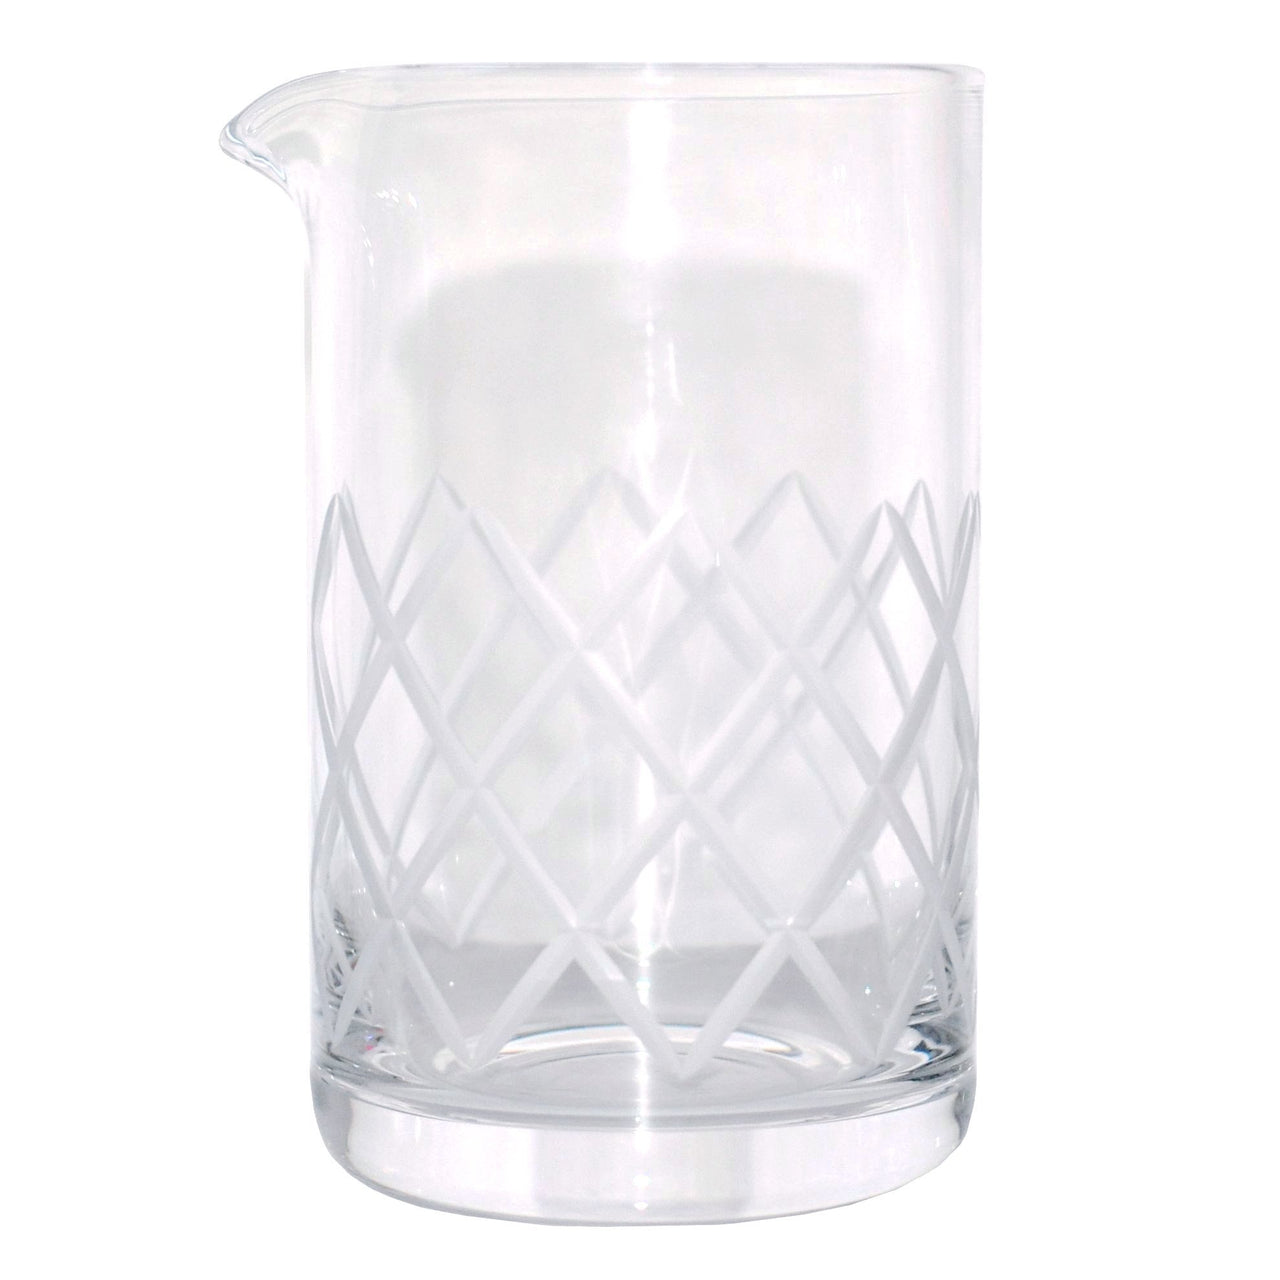 Rona Diamond Cut Crystal Cocktail Mixing Pitcher, The Hour Shop